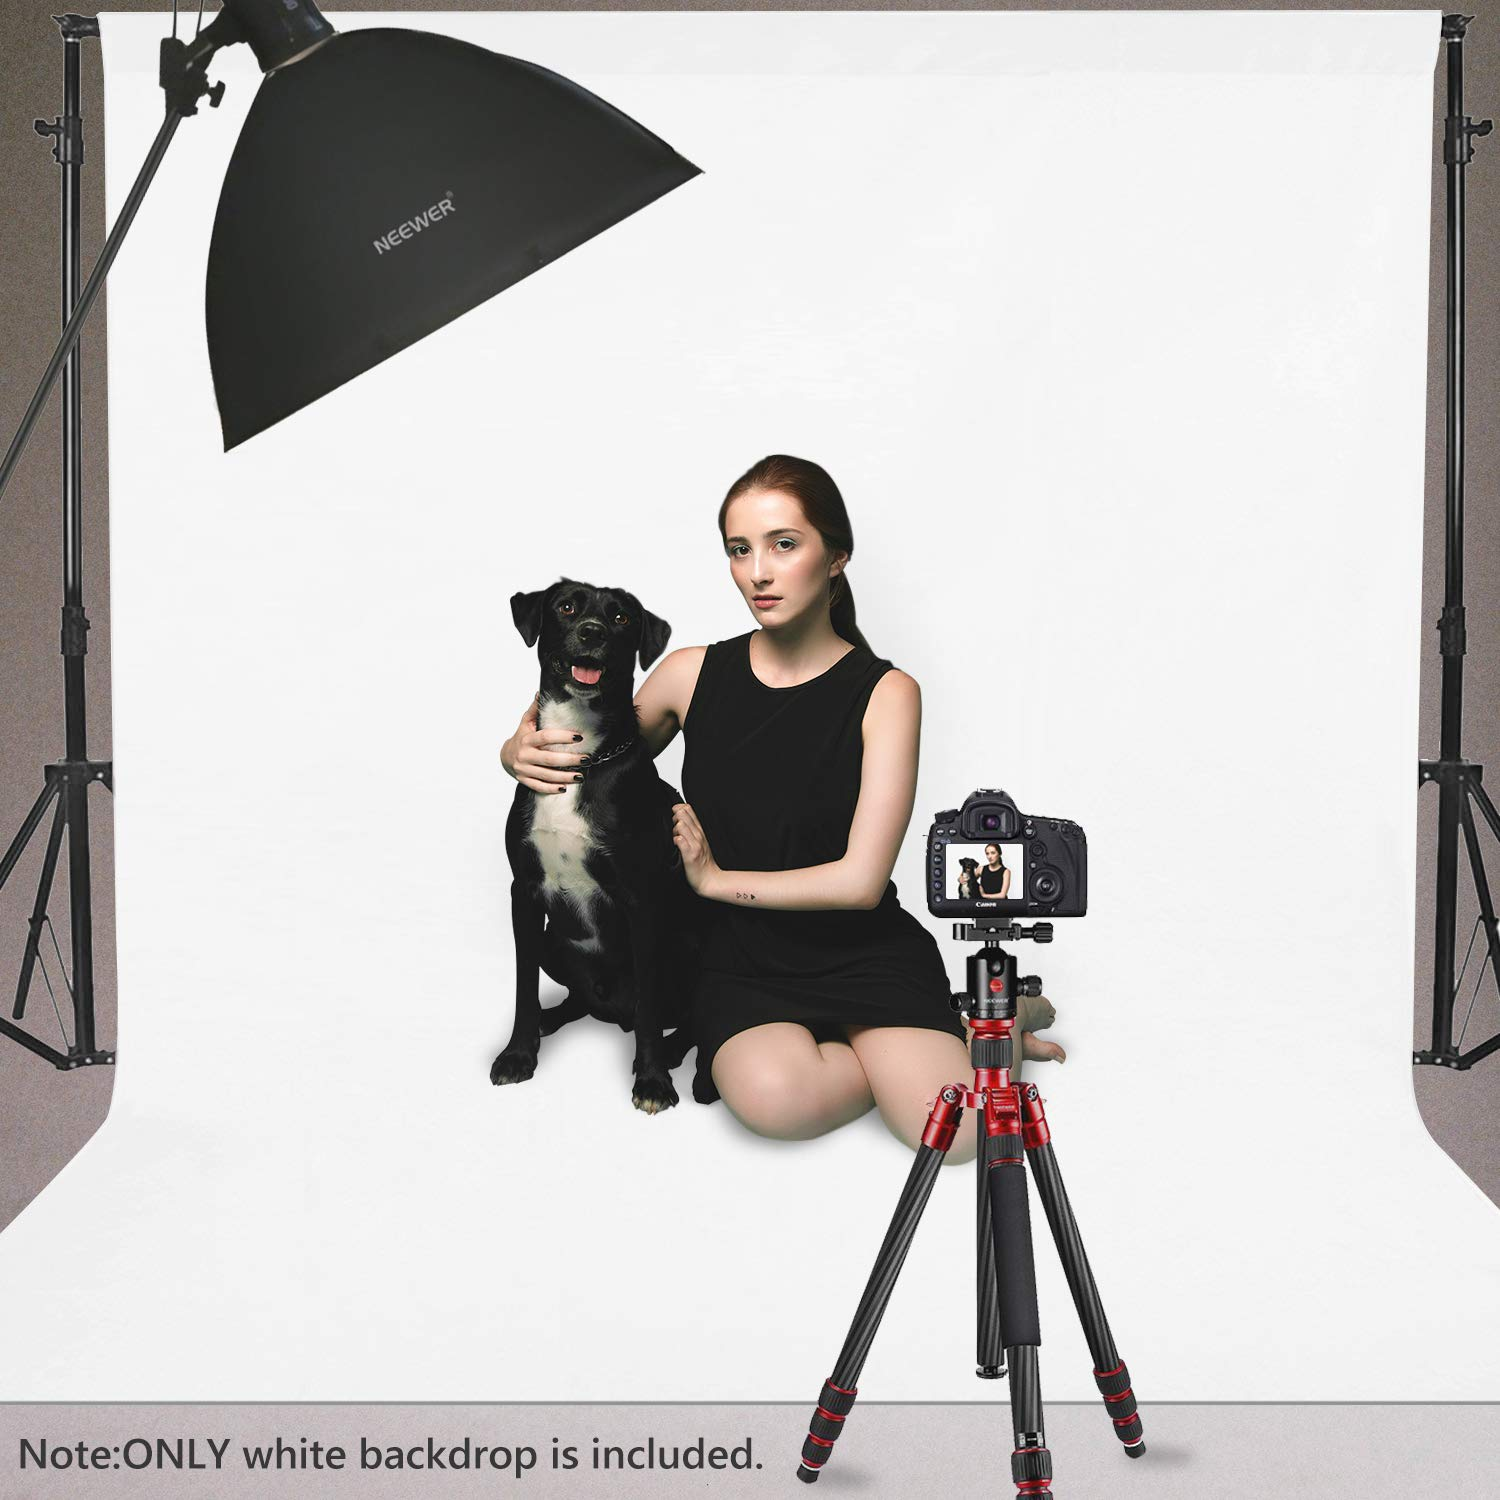 Neewer 10 x 12FT / 3 x 3.6M PRO Photo Studio Fabric Collapsible Backdrop Background for Photography,Video and Televison (Background ONLY) - White by Neewer (Image #3)